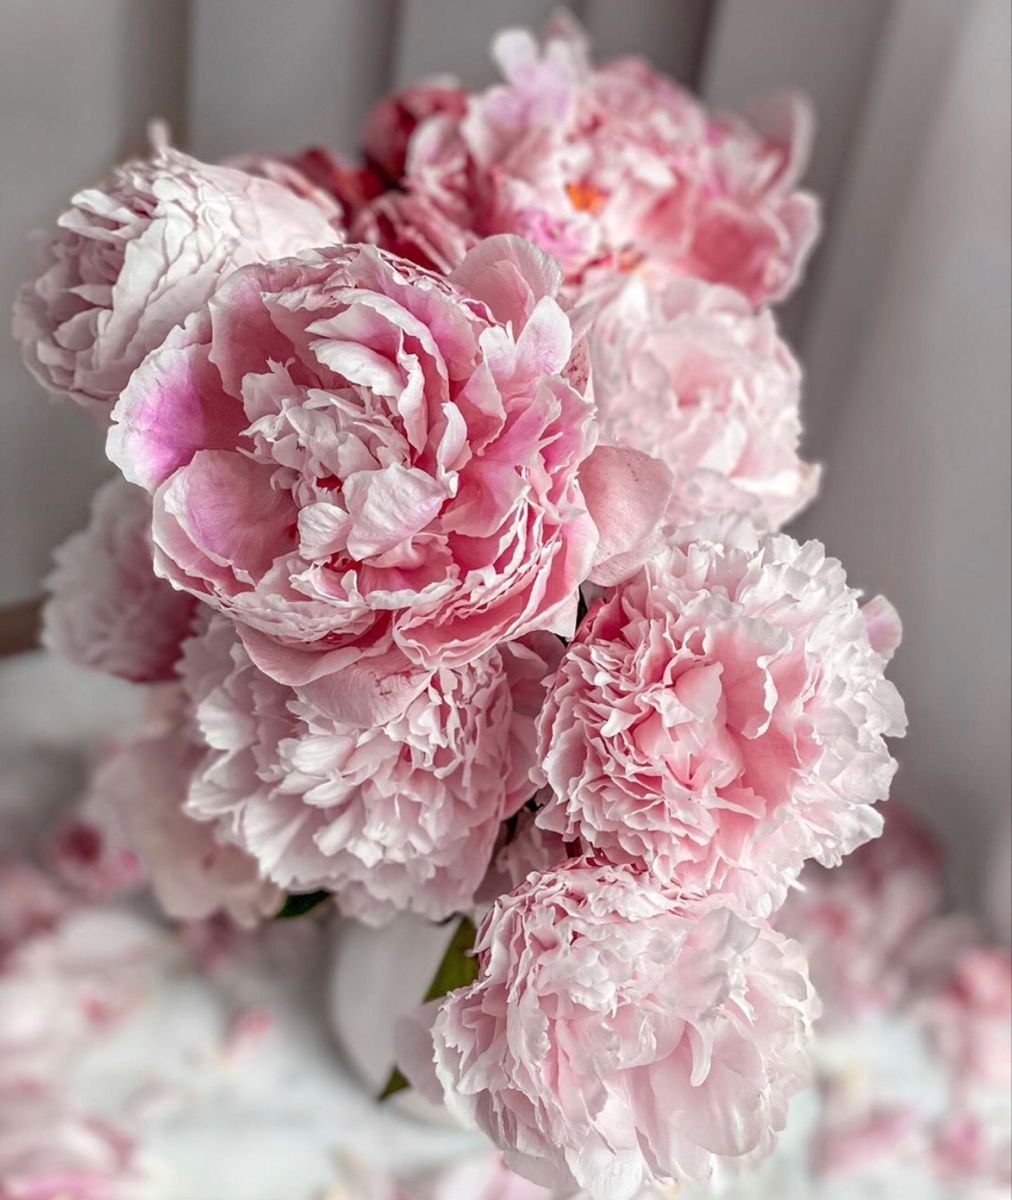 Peonies For Sale In 2020 Wedding Flowers Peonies Peonies For Sale Flowers